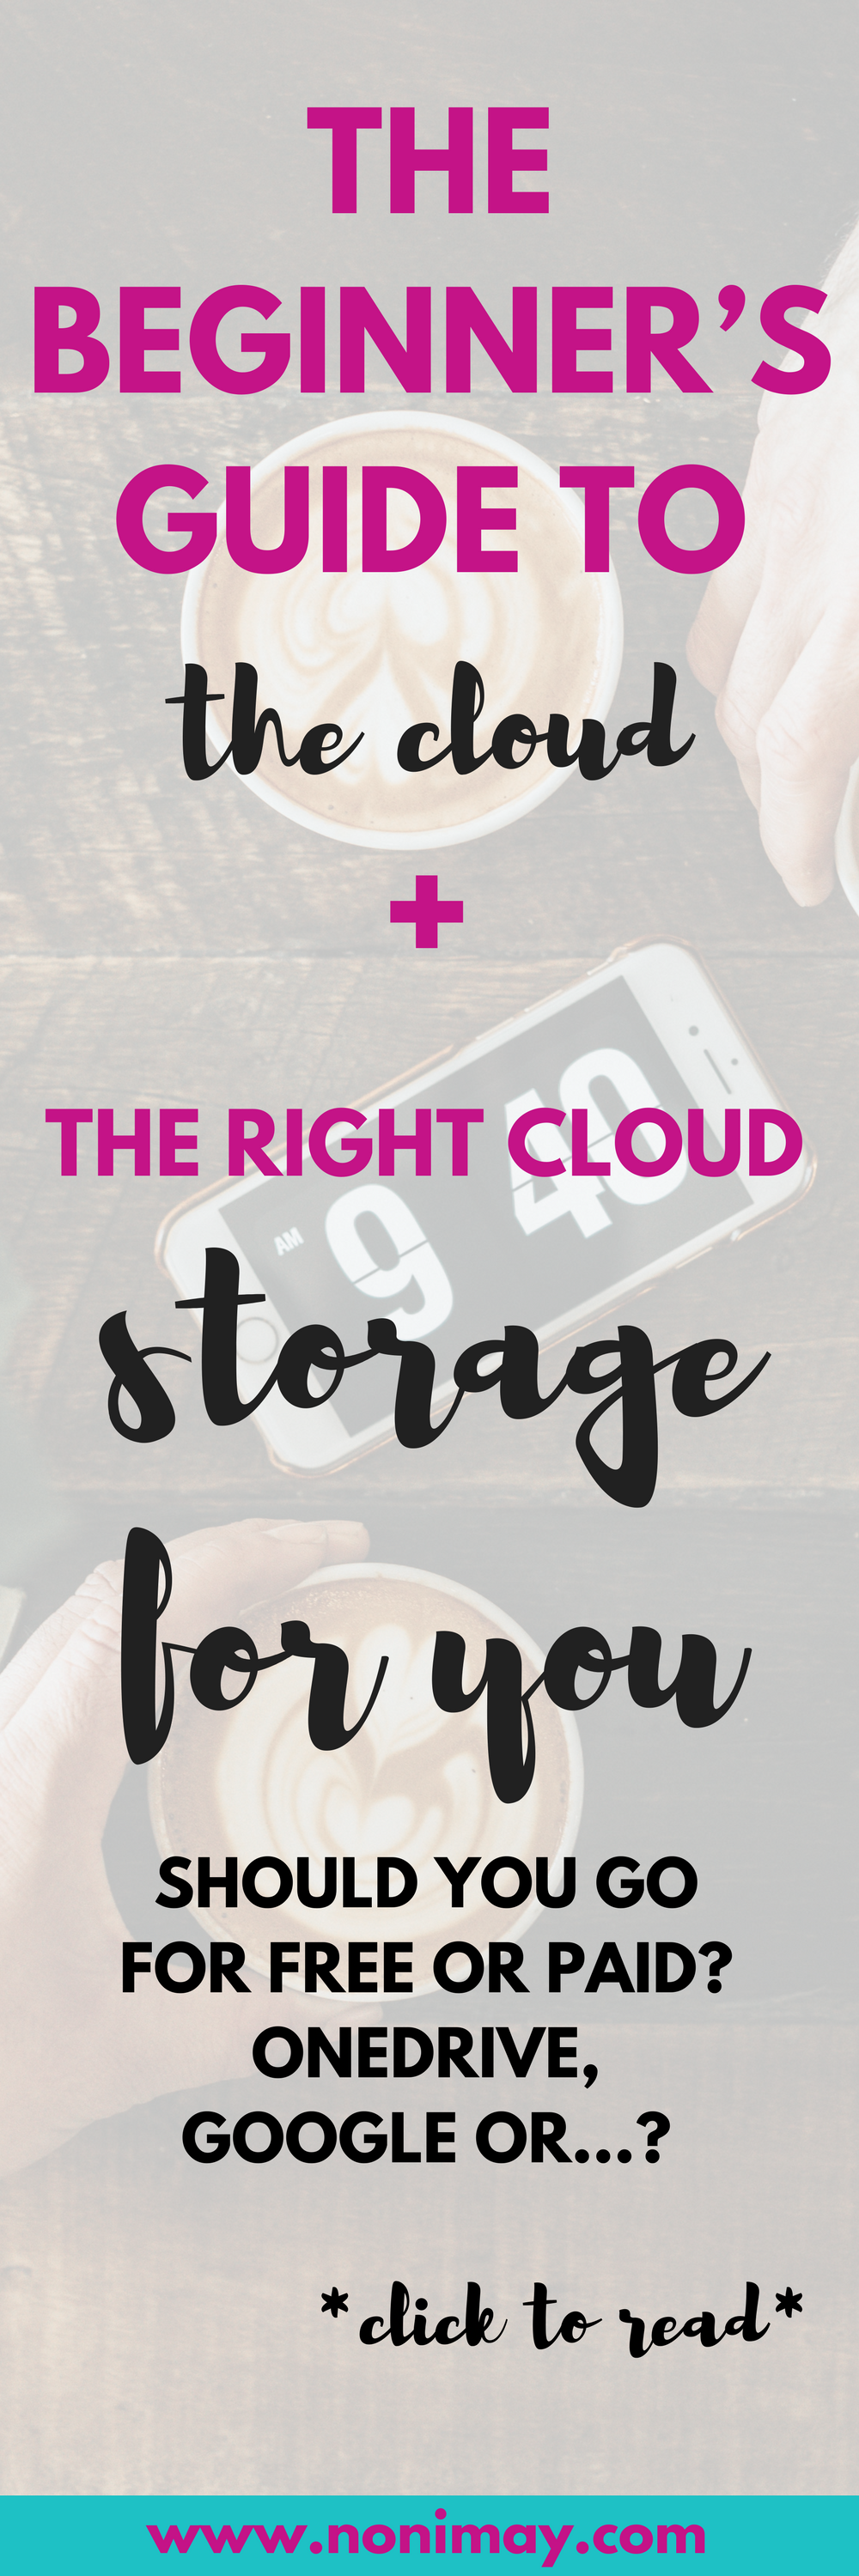 The beginner's guide to the cloud + the cloud storage for you